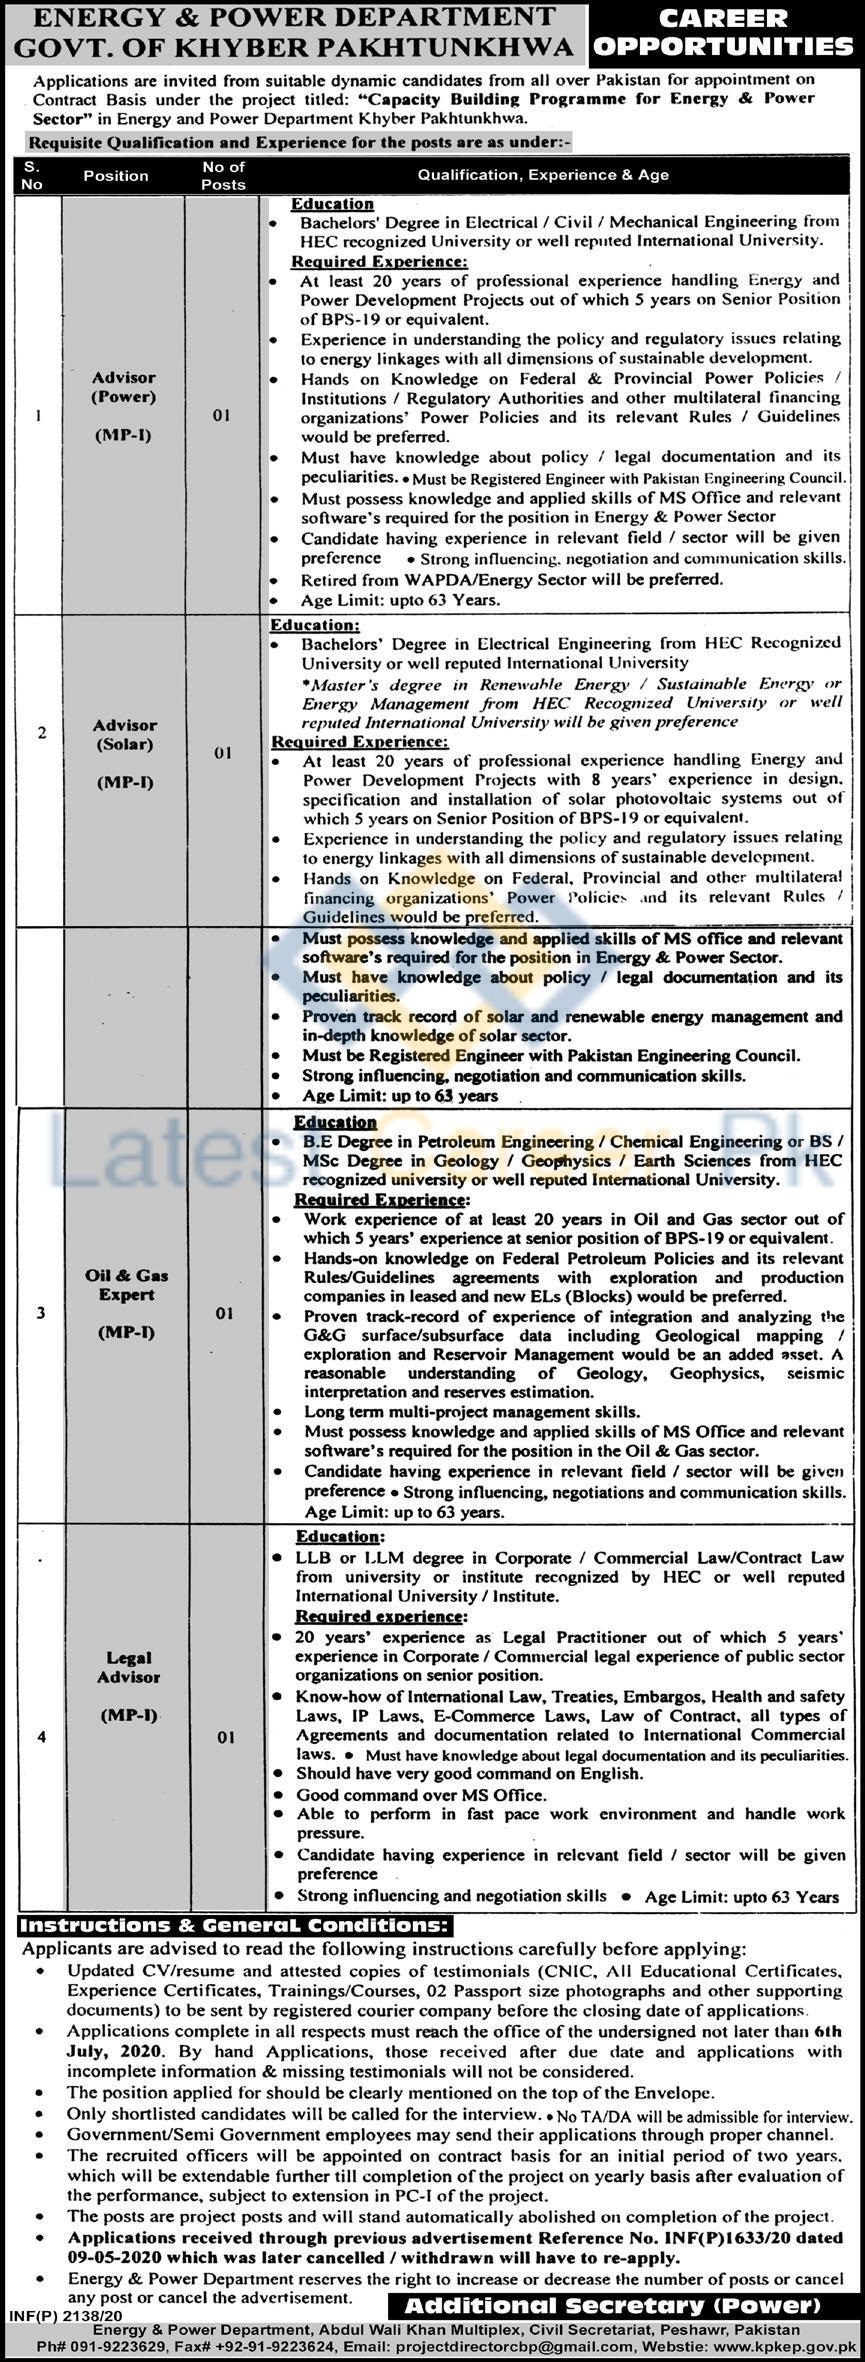 Govt-of-Khyber-Pakhtunkhwa-Energy-and-Power-Department-Peshawar-Jobs-18-June-2020